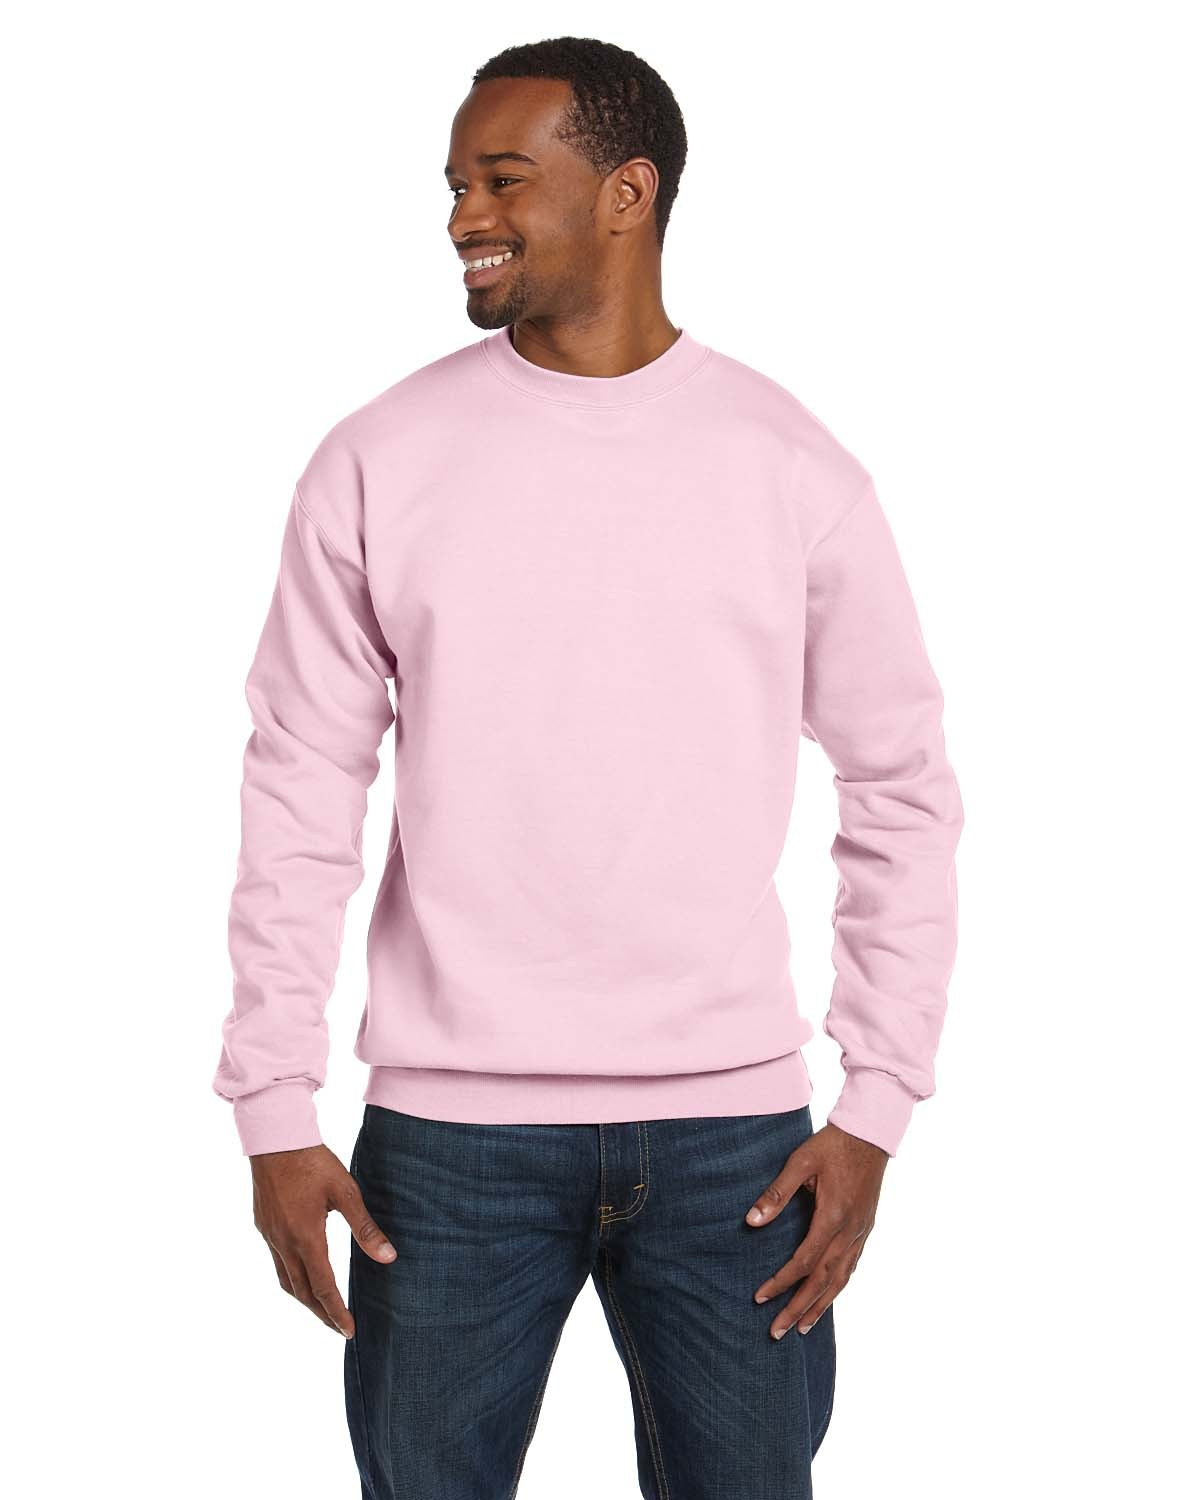 P1607 Hanes PALE PINK